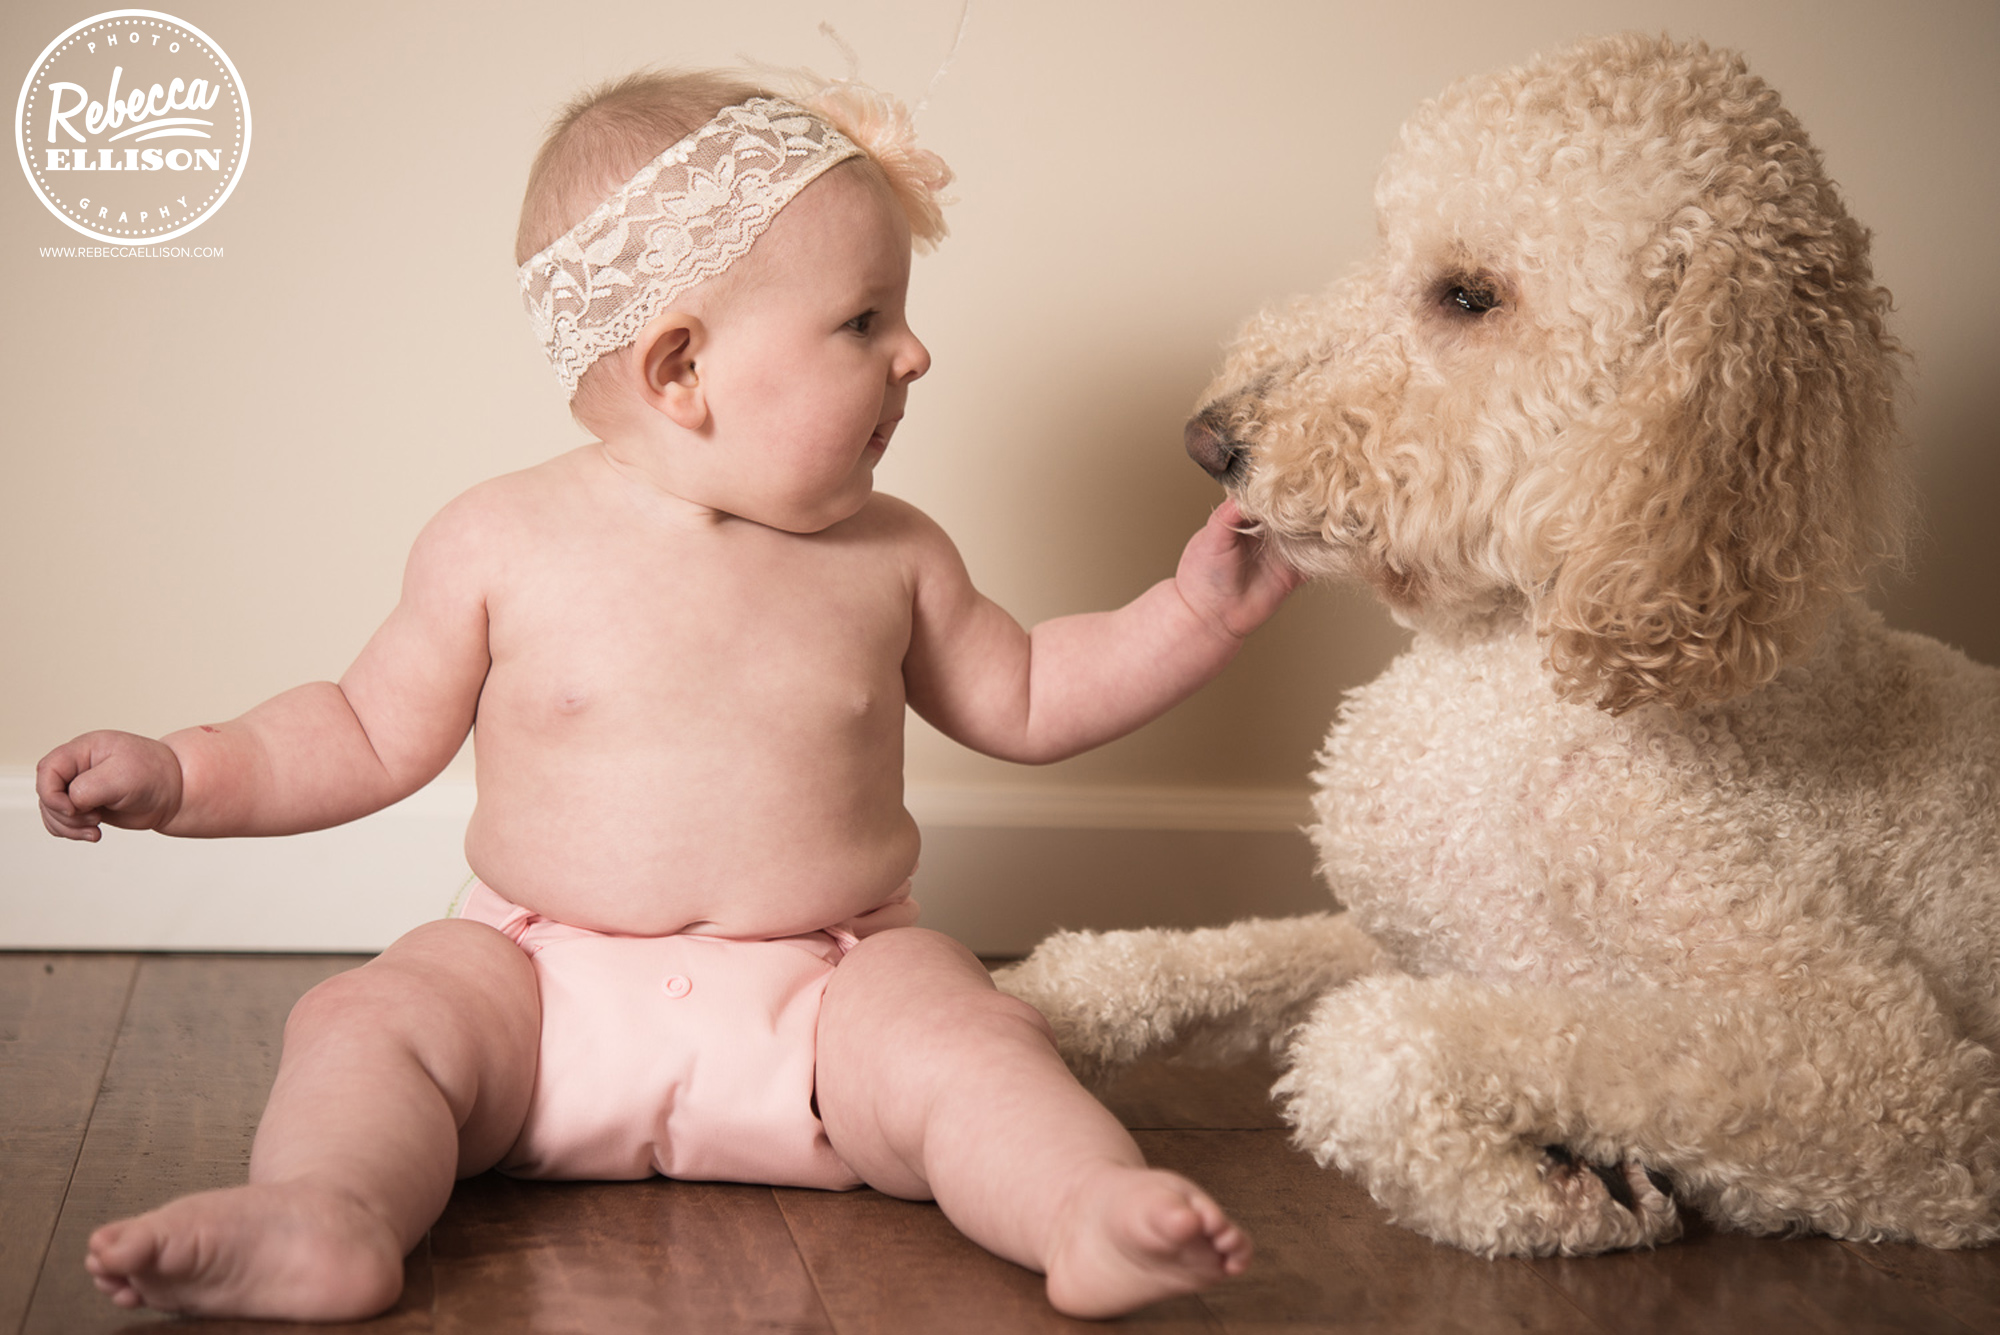 Baby and dog at an in home portrait session photographed by Rebecca Ellison Photography